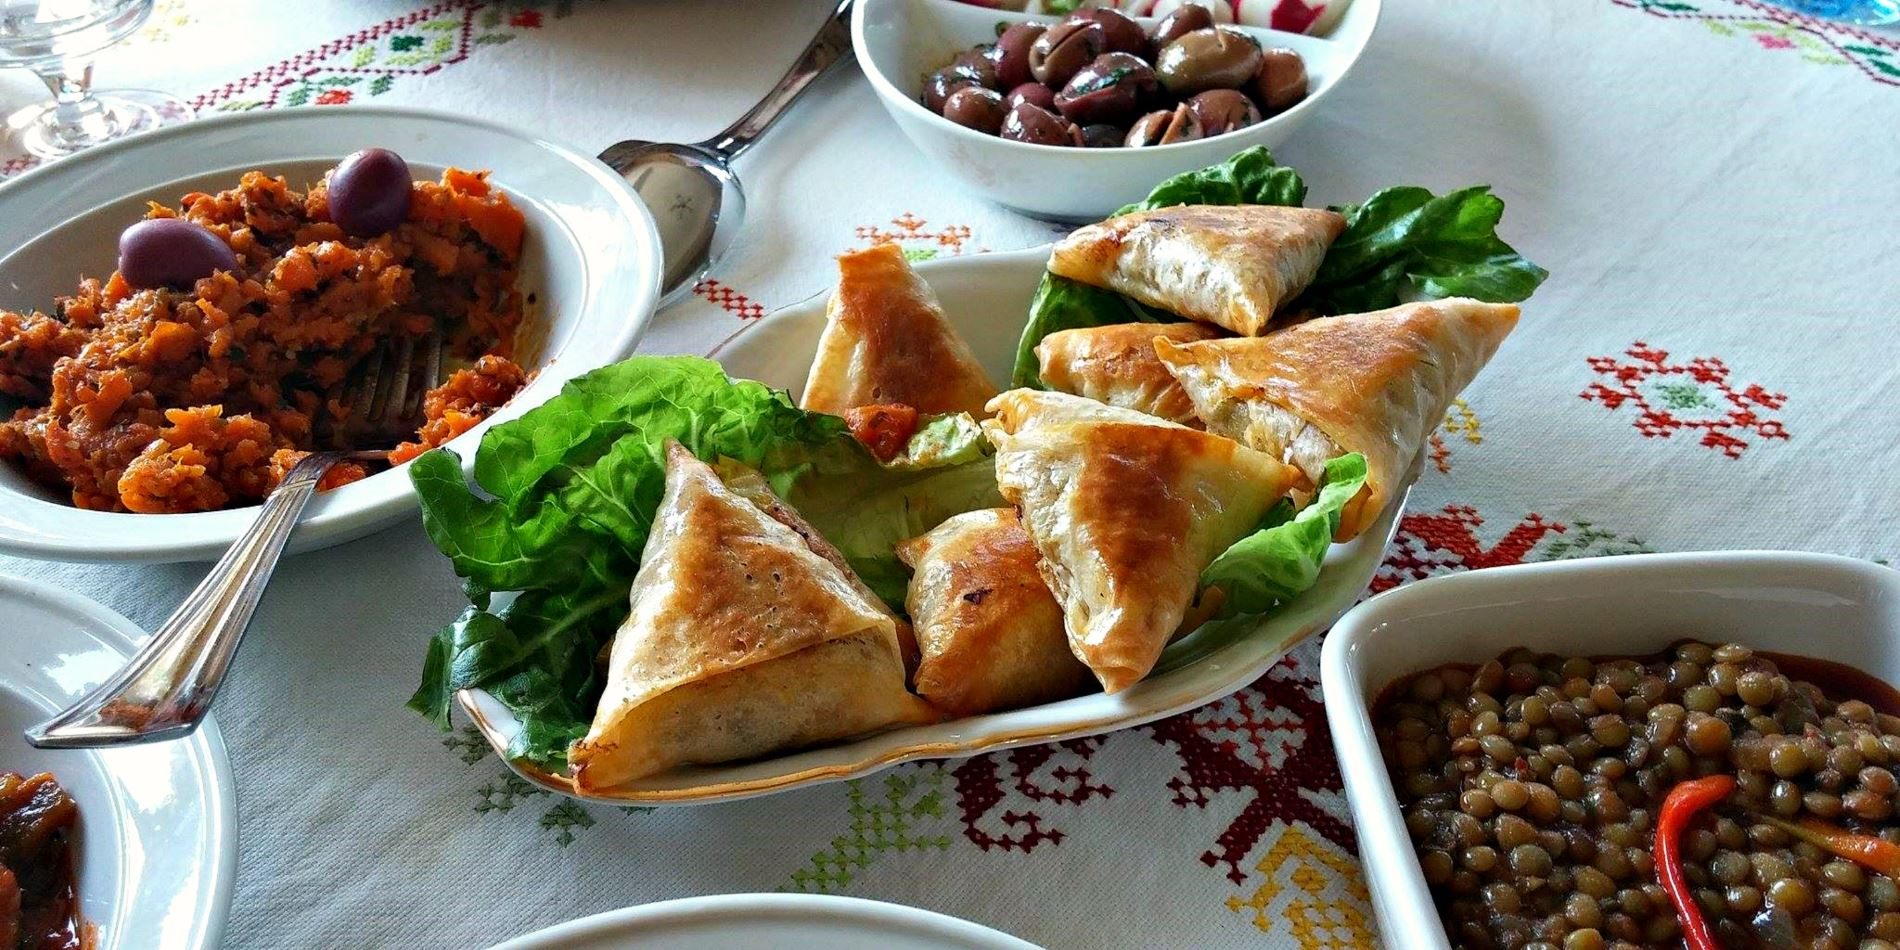 Moroccan savory pastries, lentils, carrot salad and olives are served as starters at a Moroccan meal for tourists in a Casablanca home.